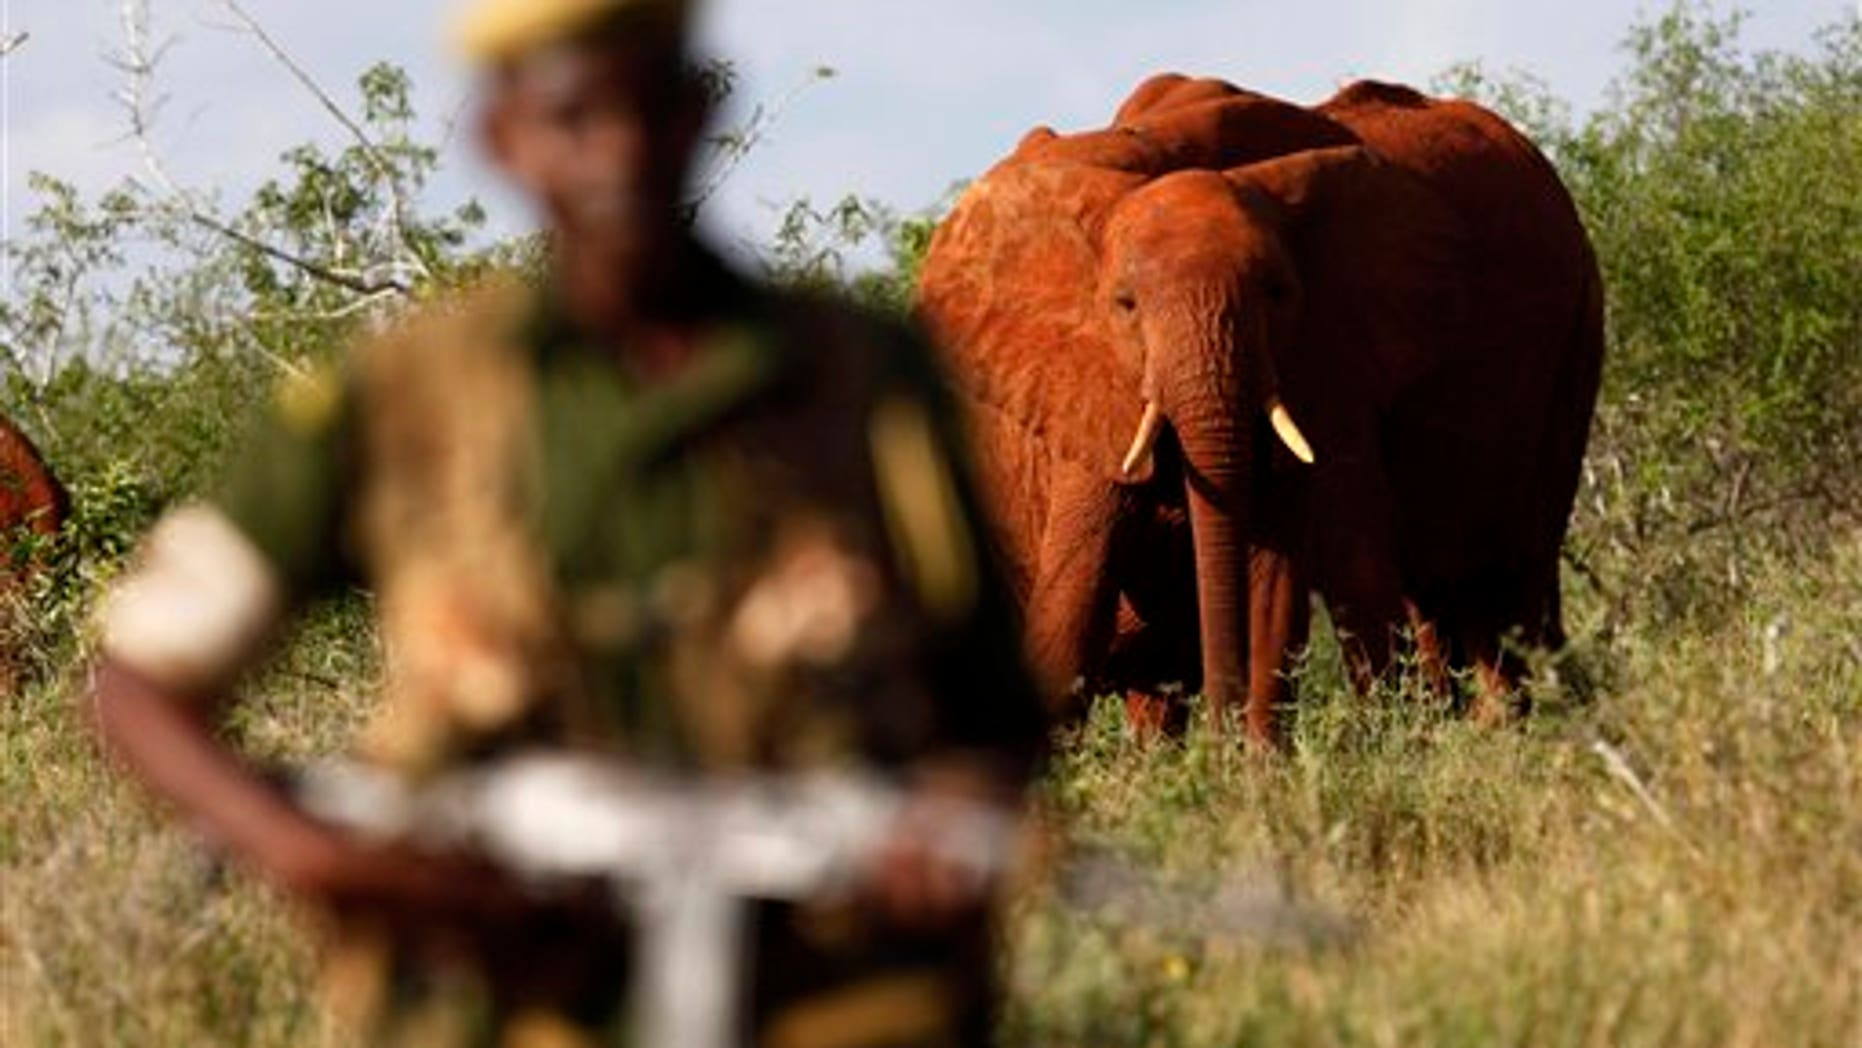 March 9, 2010: Kenya Wildlife Ranger Mohamed Kamanya is seen in front of a herd of elephants in the Tsavo East national park, Kenya.